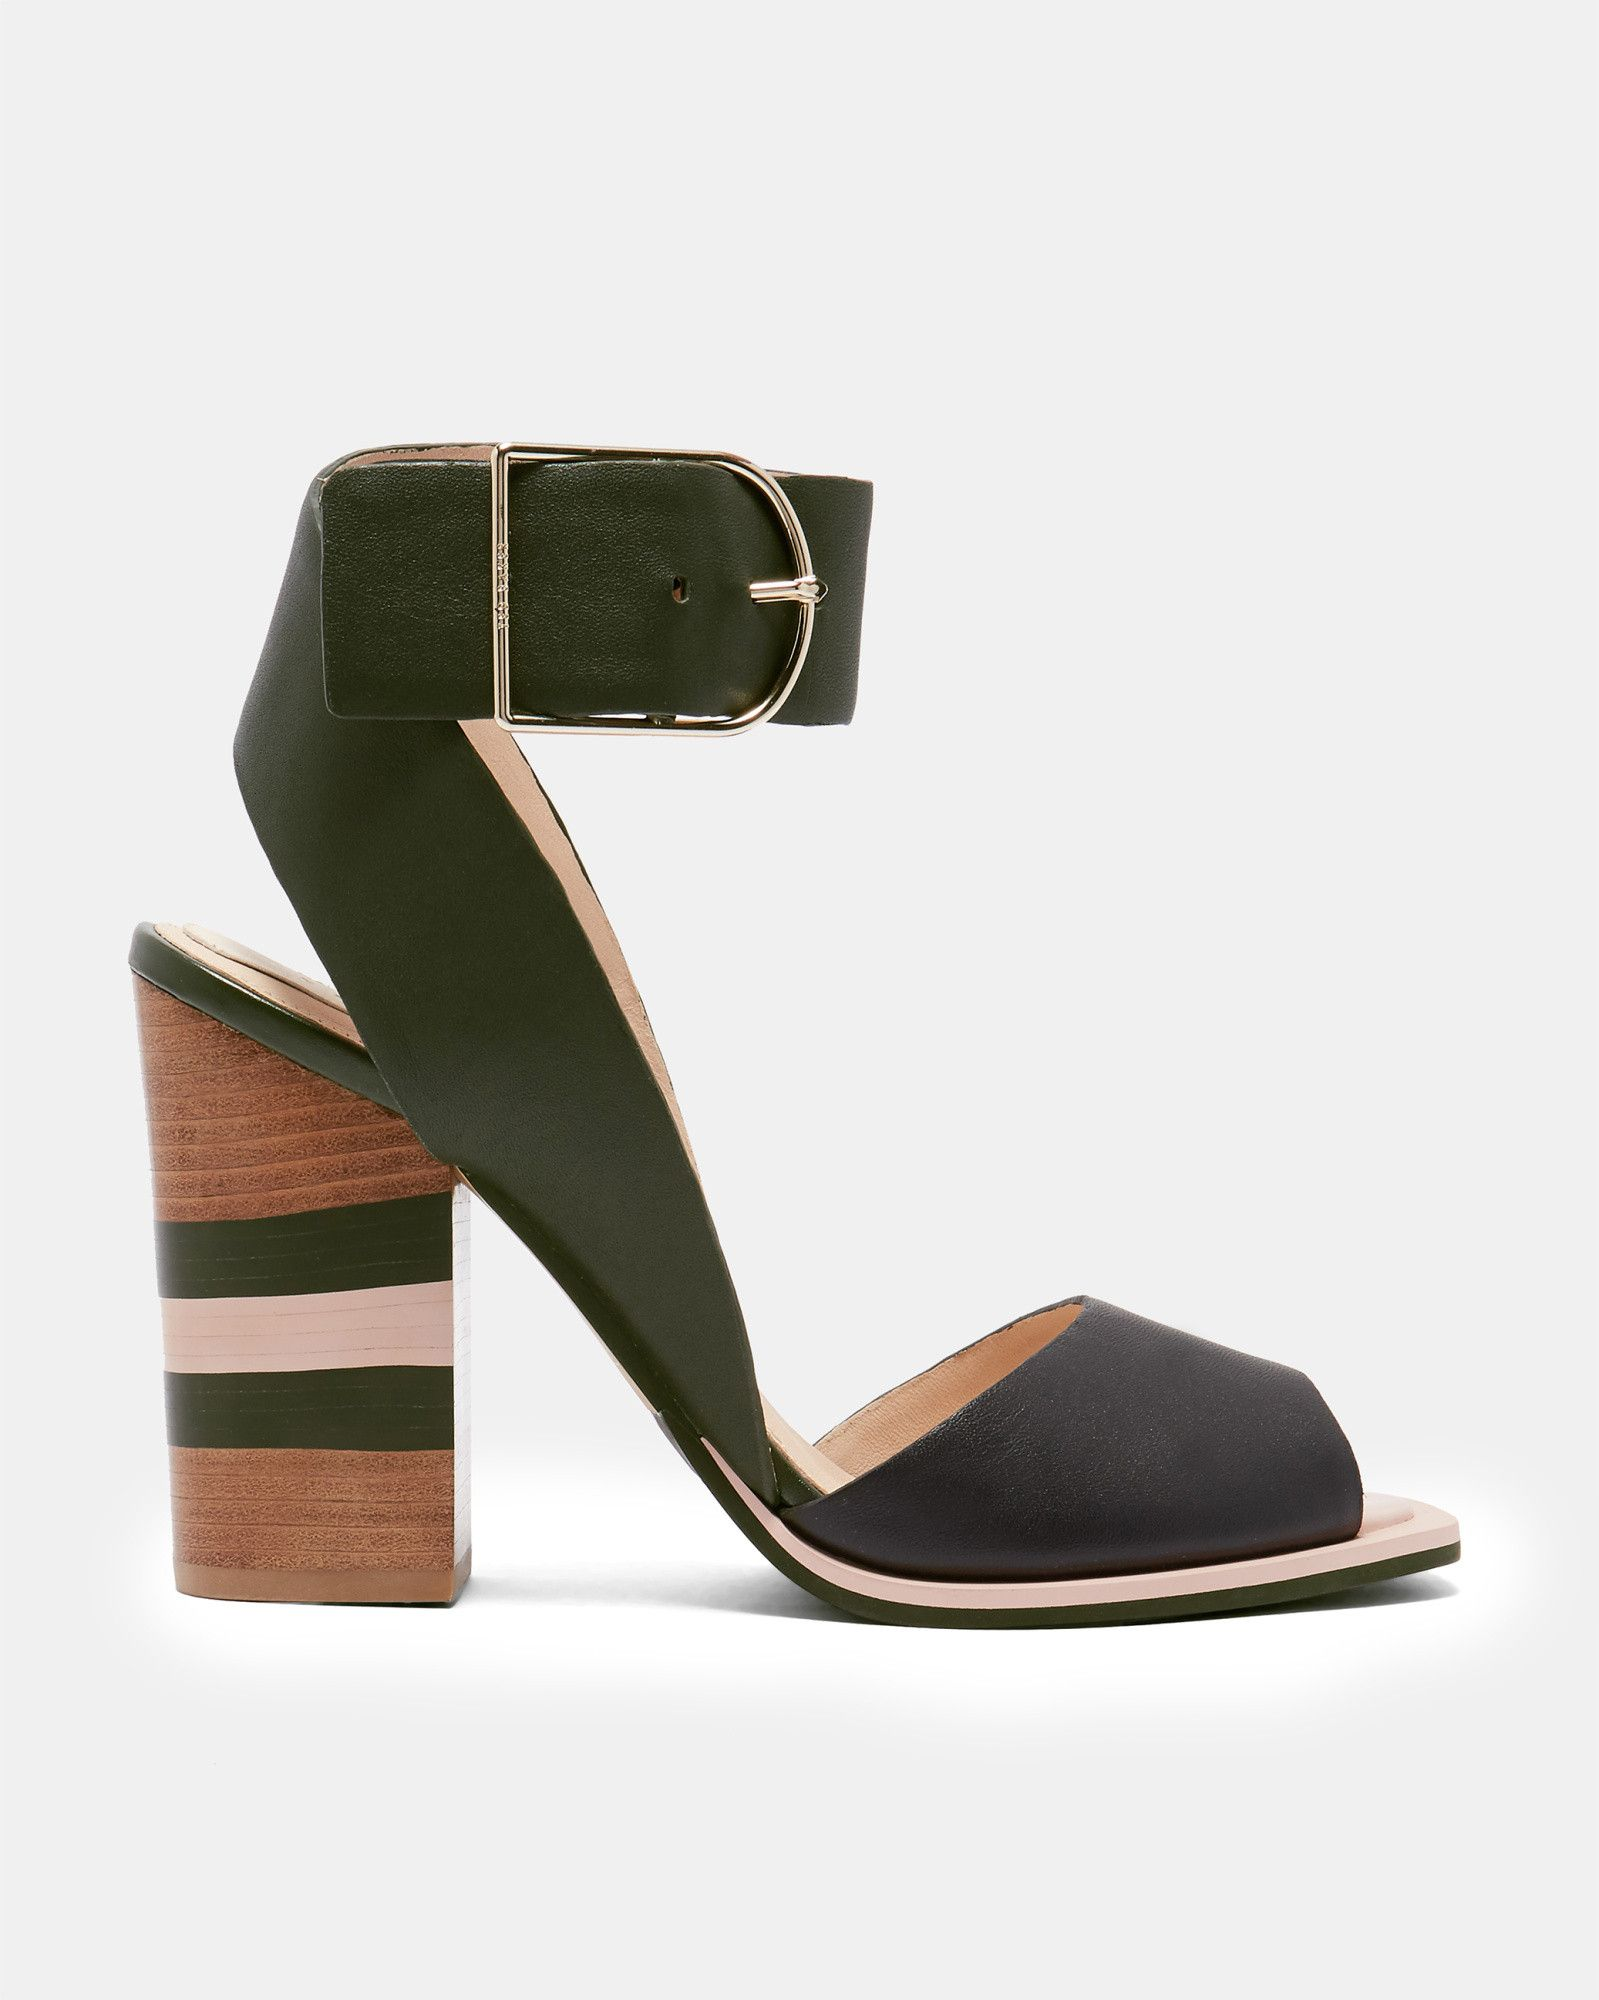 01113dfe411 THASIE Colour-block detail heeled sandals #TedToToe | Ted Baker ...